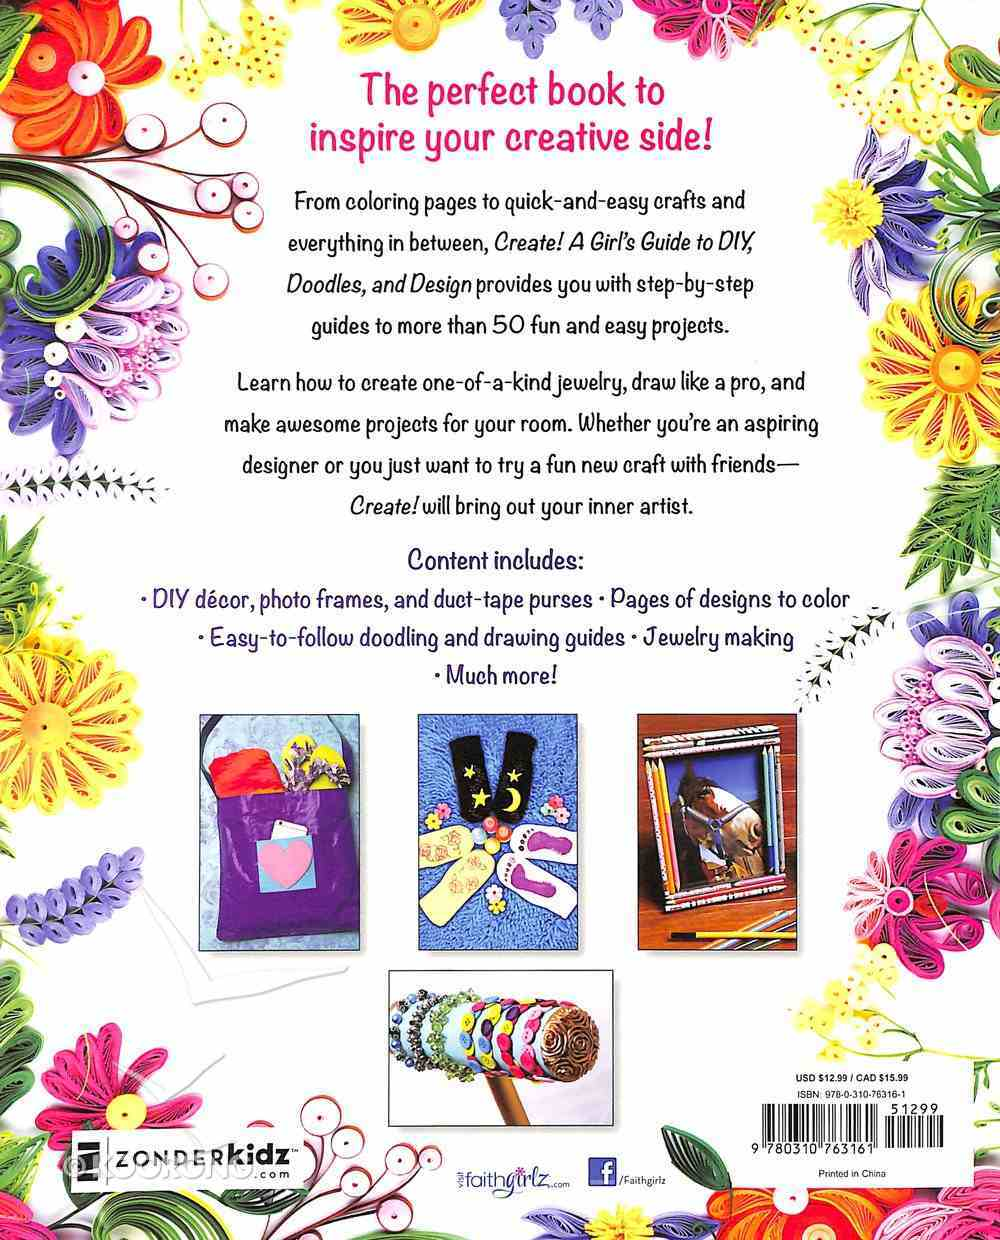 Create!: A Girl's Guide to Diy, Doodles, and Design (Faithgirlz! Series) Paperback